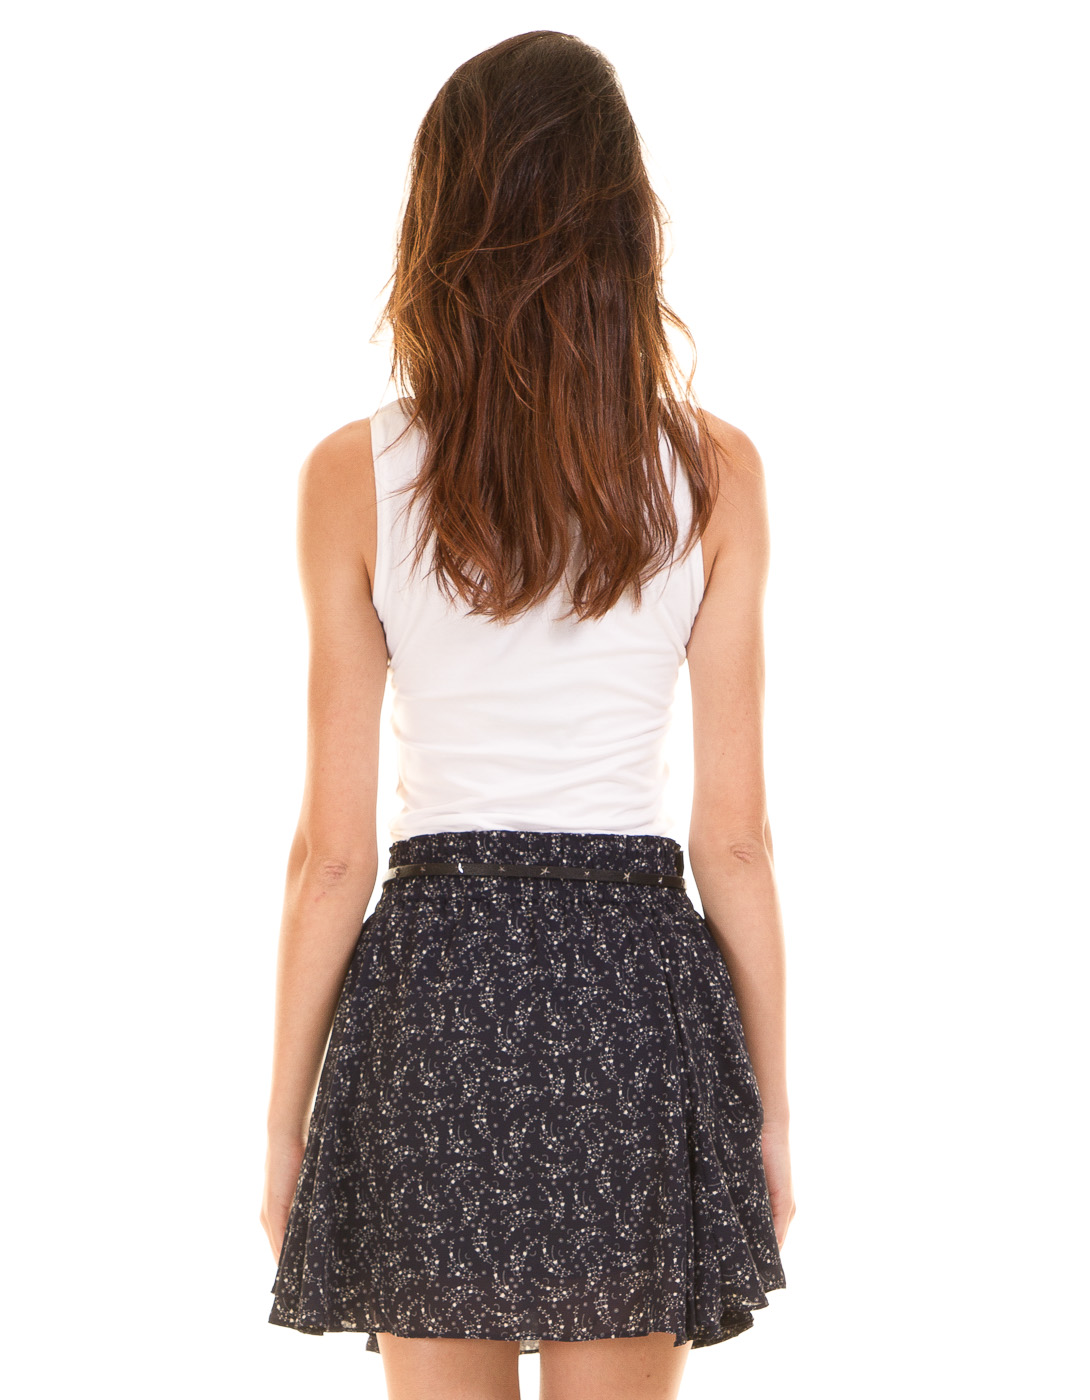 c2f58eeb4 Print skirt by Maison Scotch-in Skirts from Women's Clothing & Accessories  on Aliexpress.com   Alibaba Group